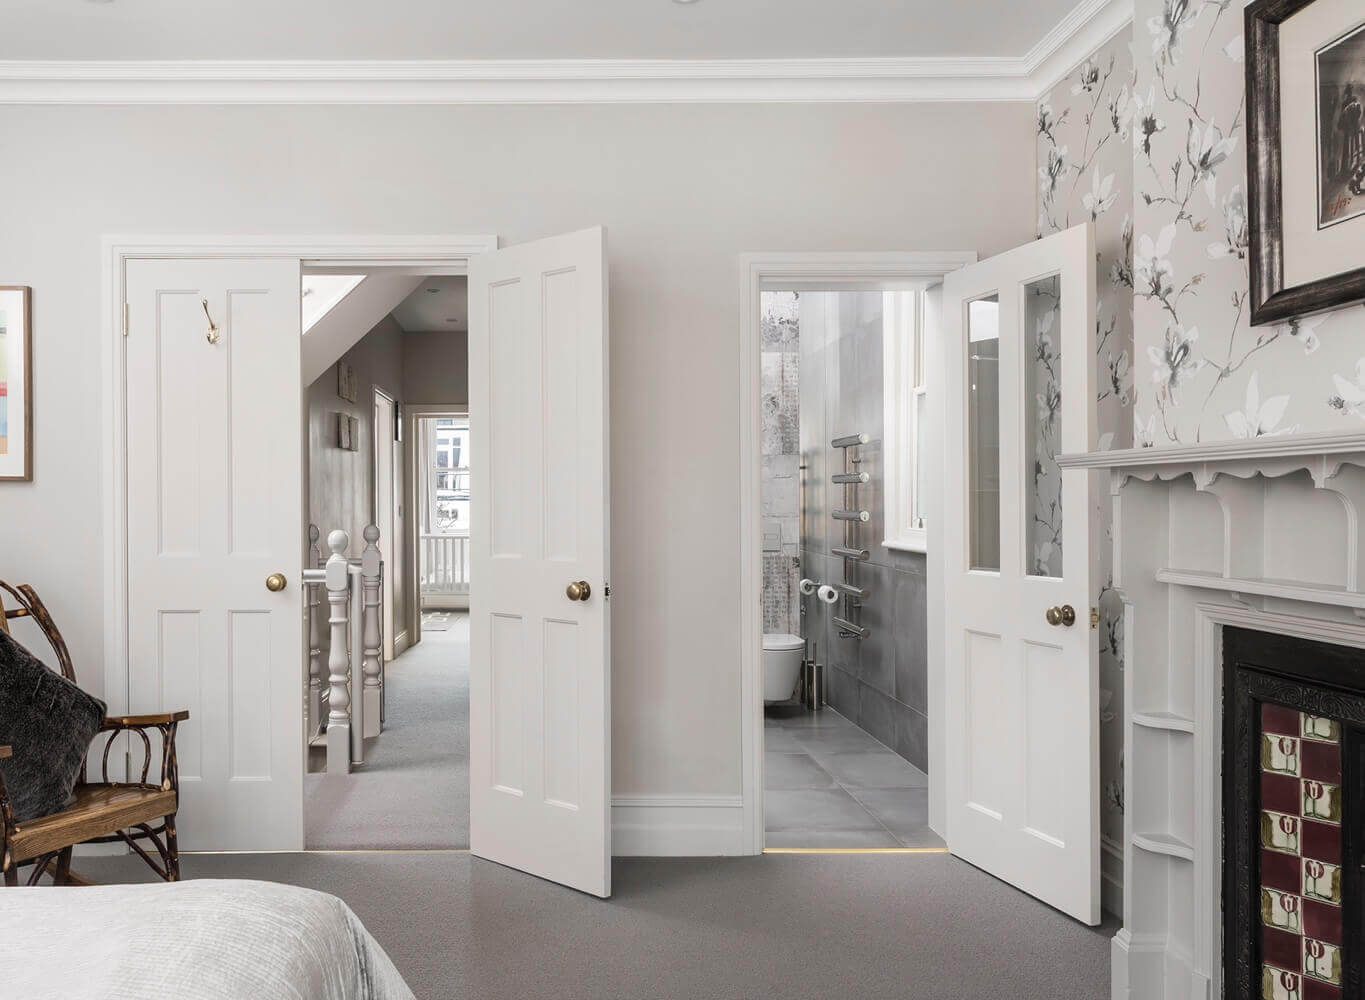 Bedroom twin doors